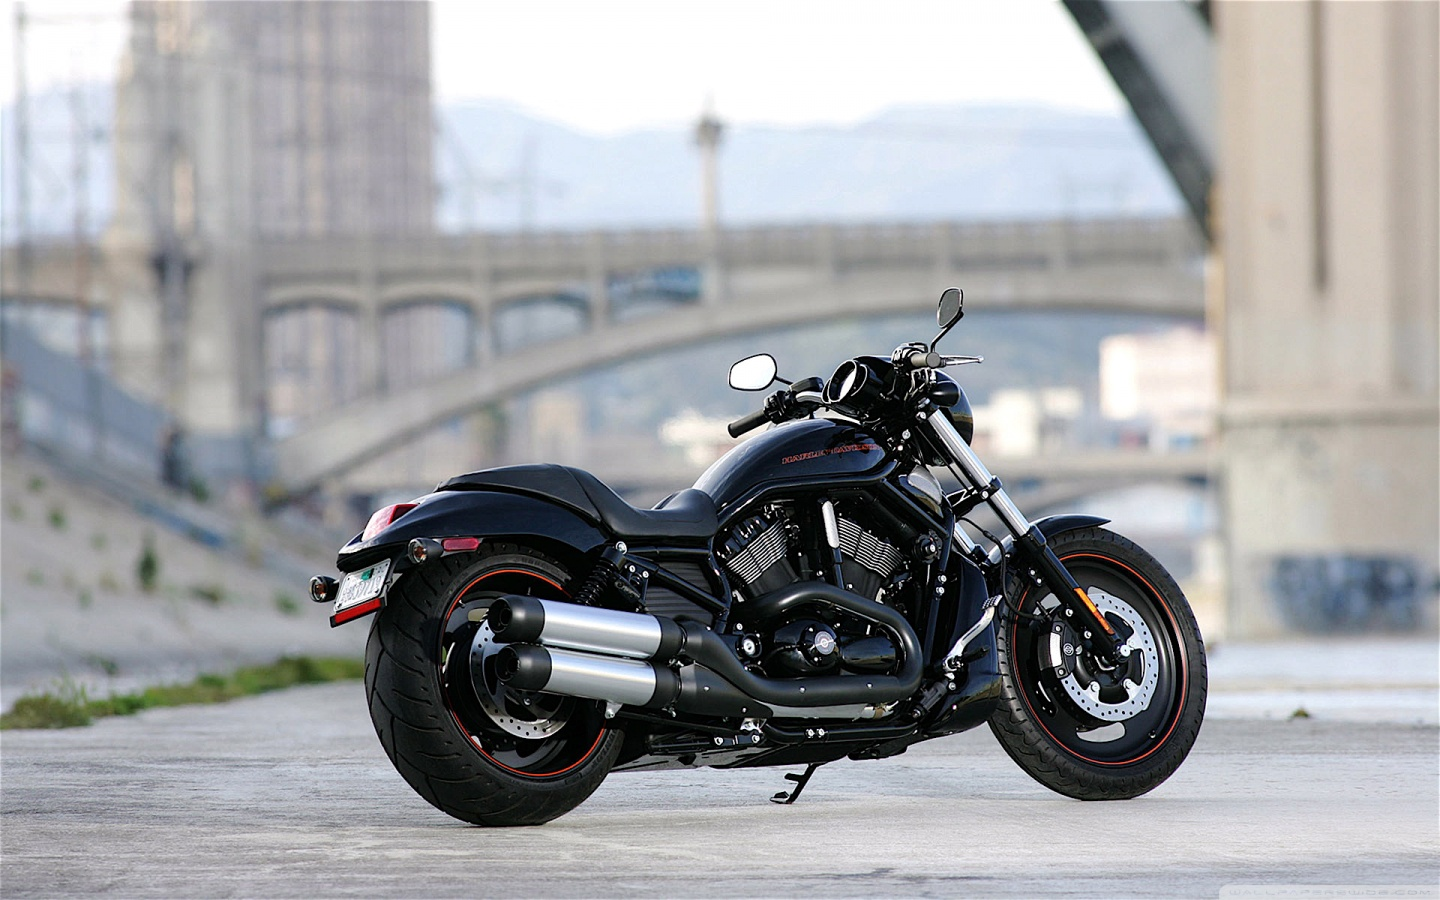 Download Harley Davidson 883 2048 X 2048 Wallpapers: Harley Davidson Wallpaper Amazing